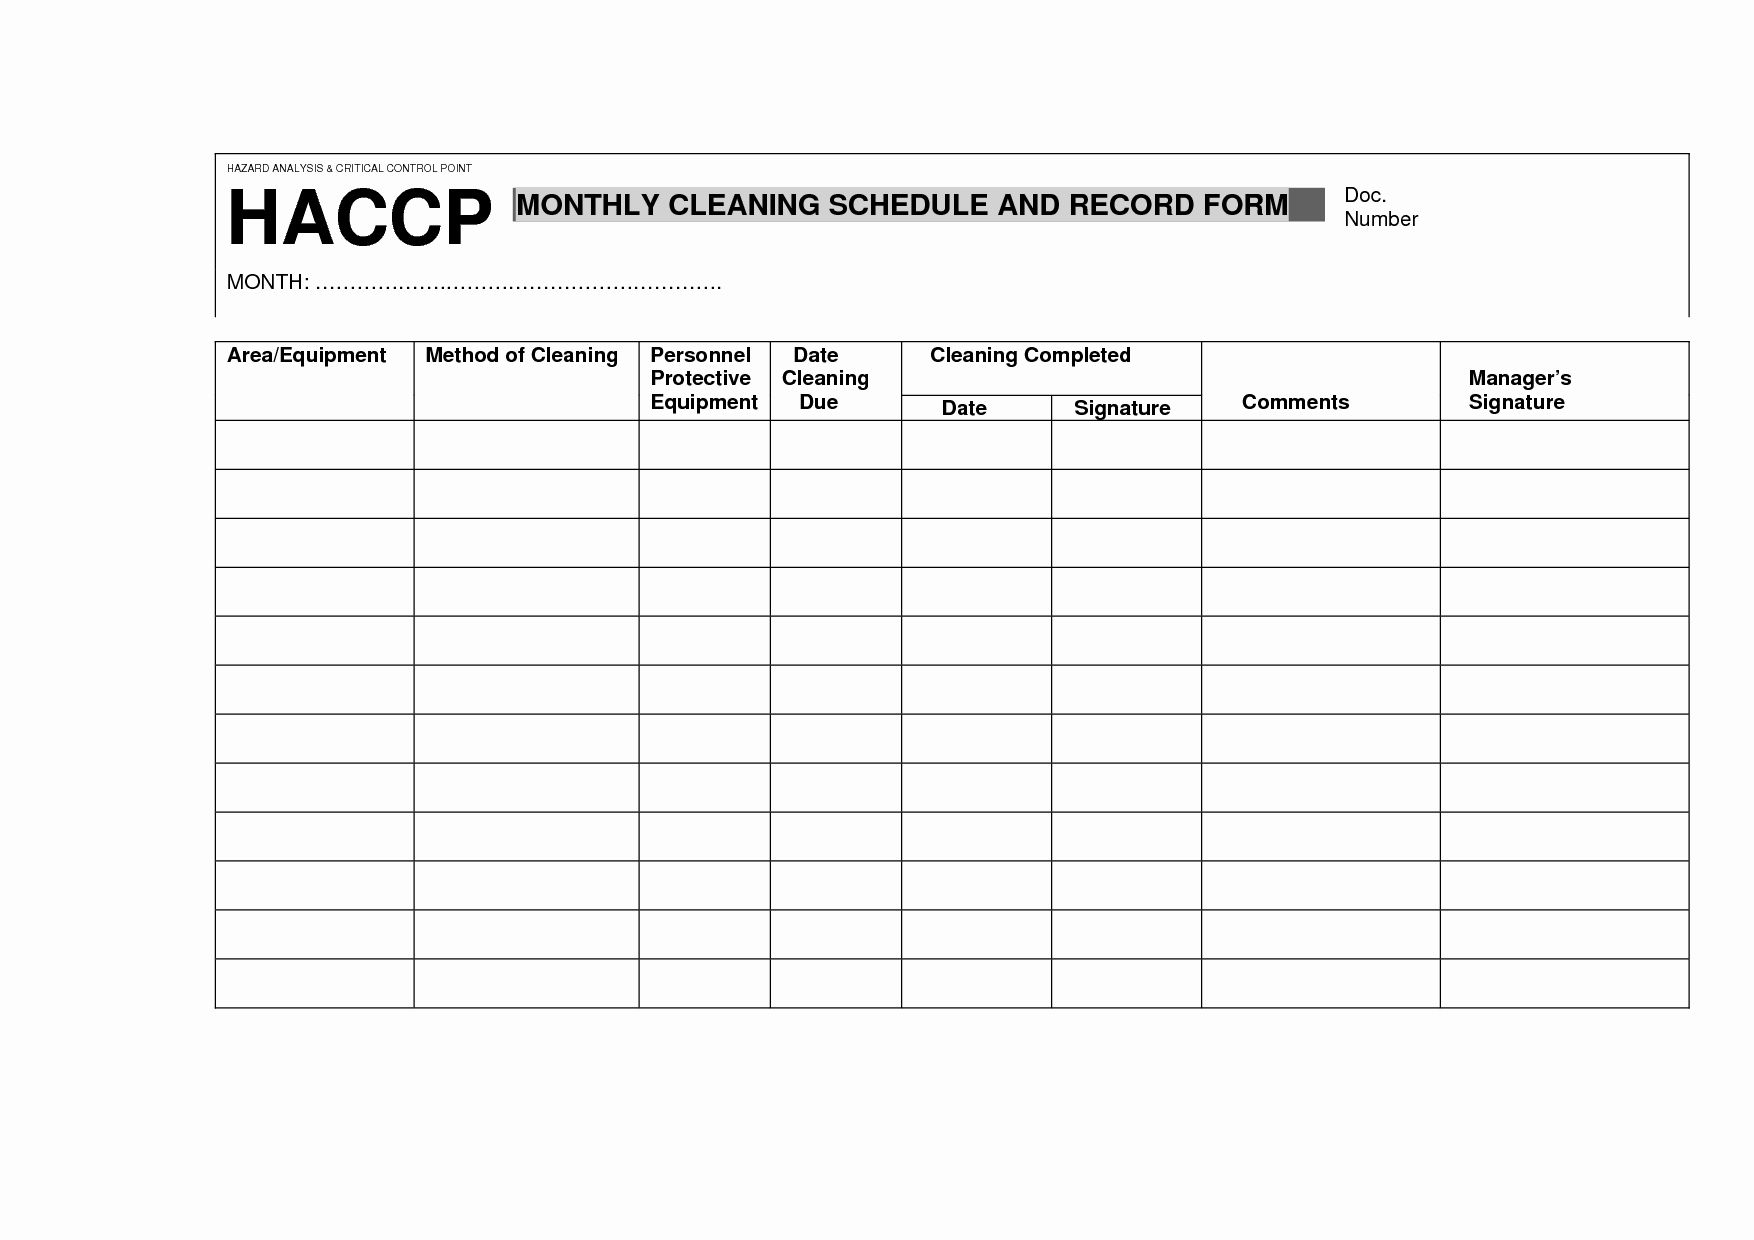 Bl Information Examples Of Haccp Plans For Chicken